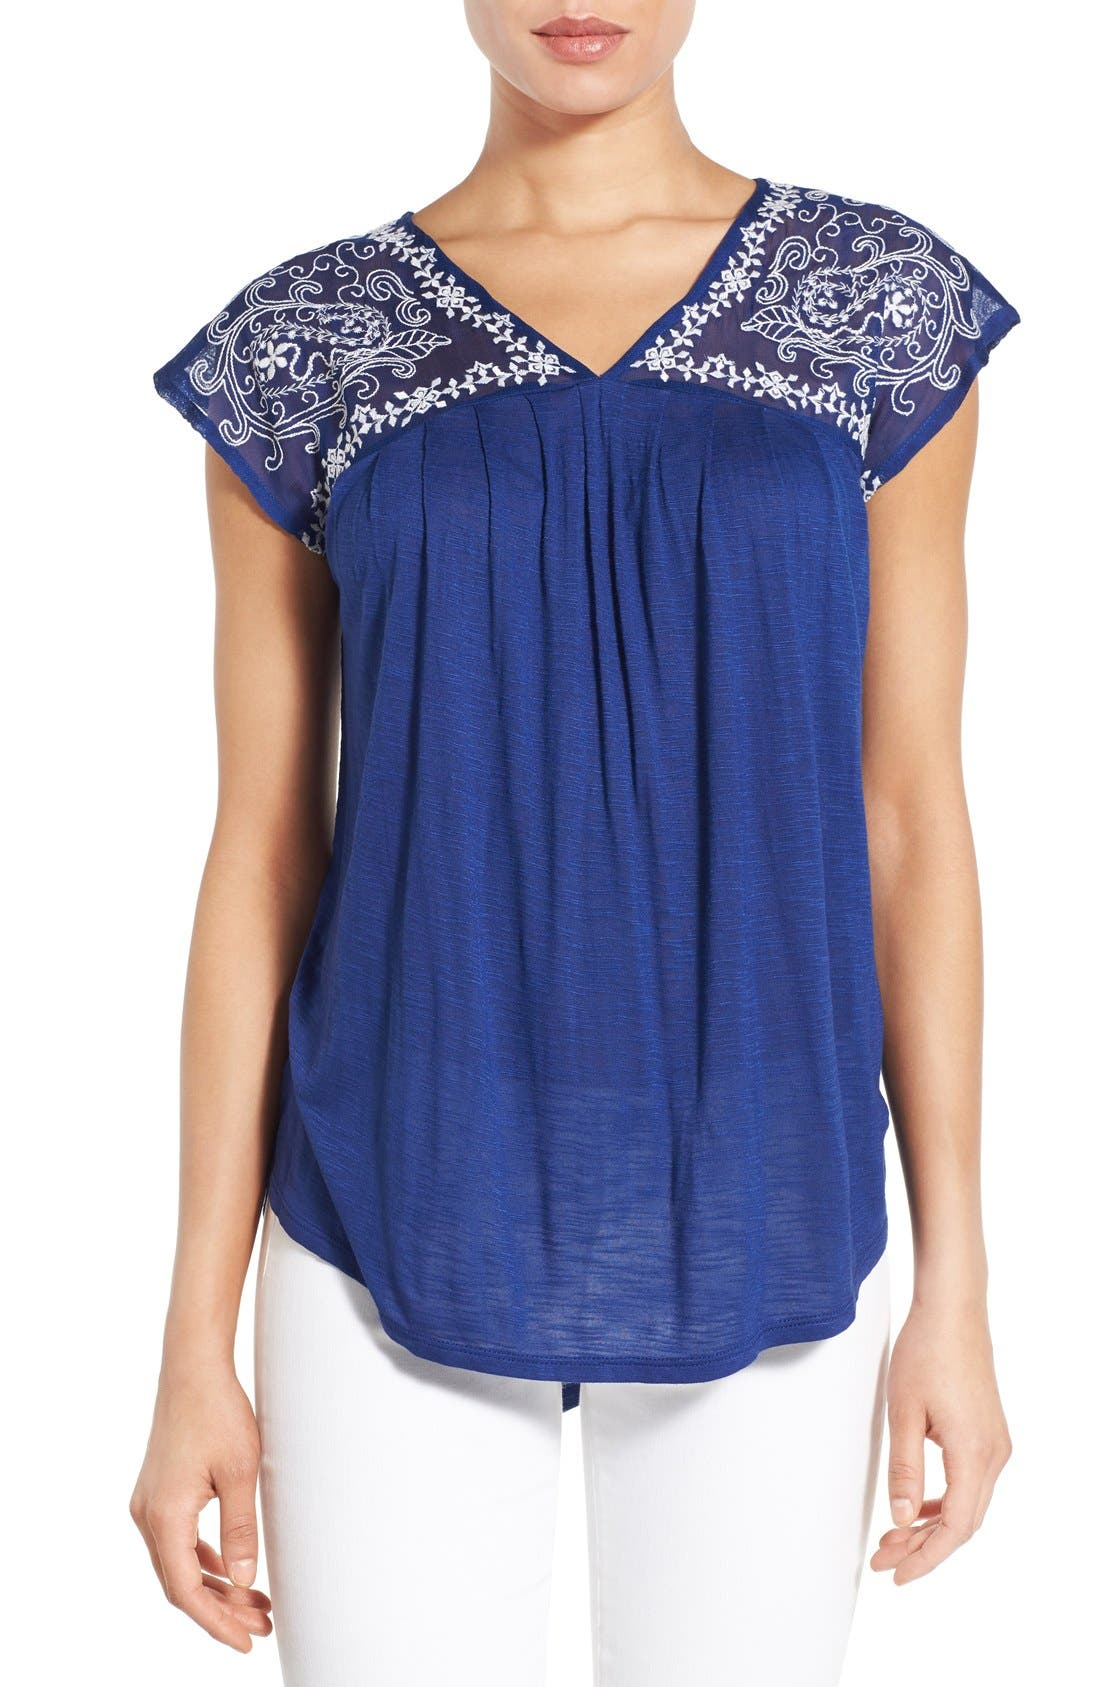 Alternate Image 1 Selected - Lucky Brand Embroidered Yoke Cap Sleeve Top